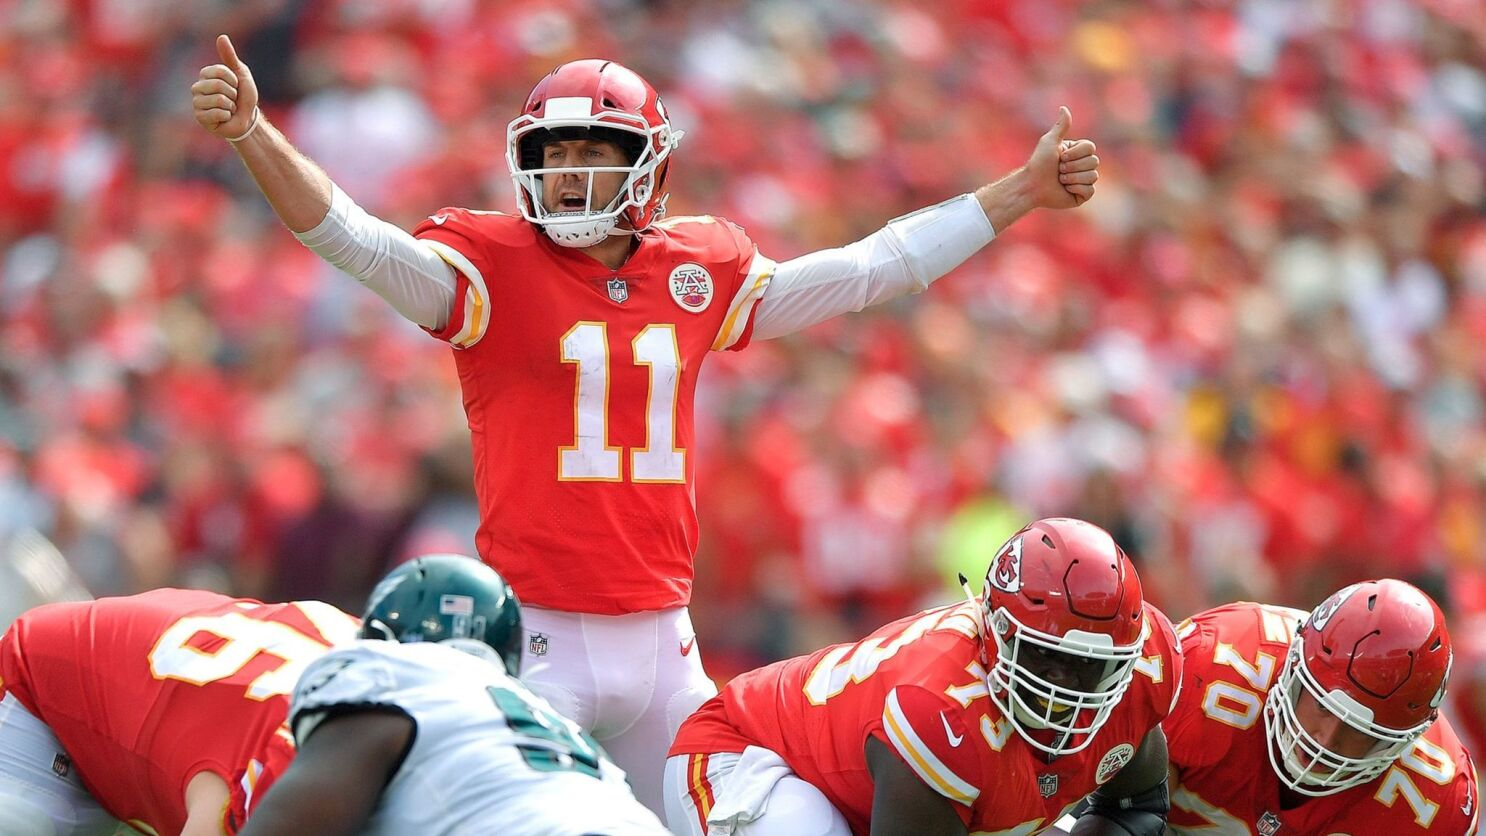 Alex Smith Has Reinvented His Play And His Legacy With The Chiefs Los Angeles Times